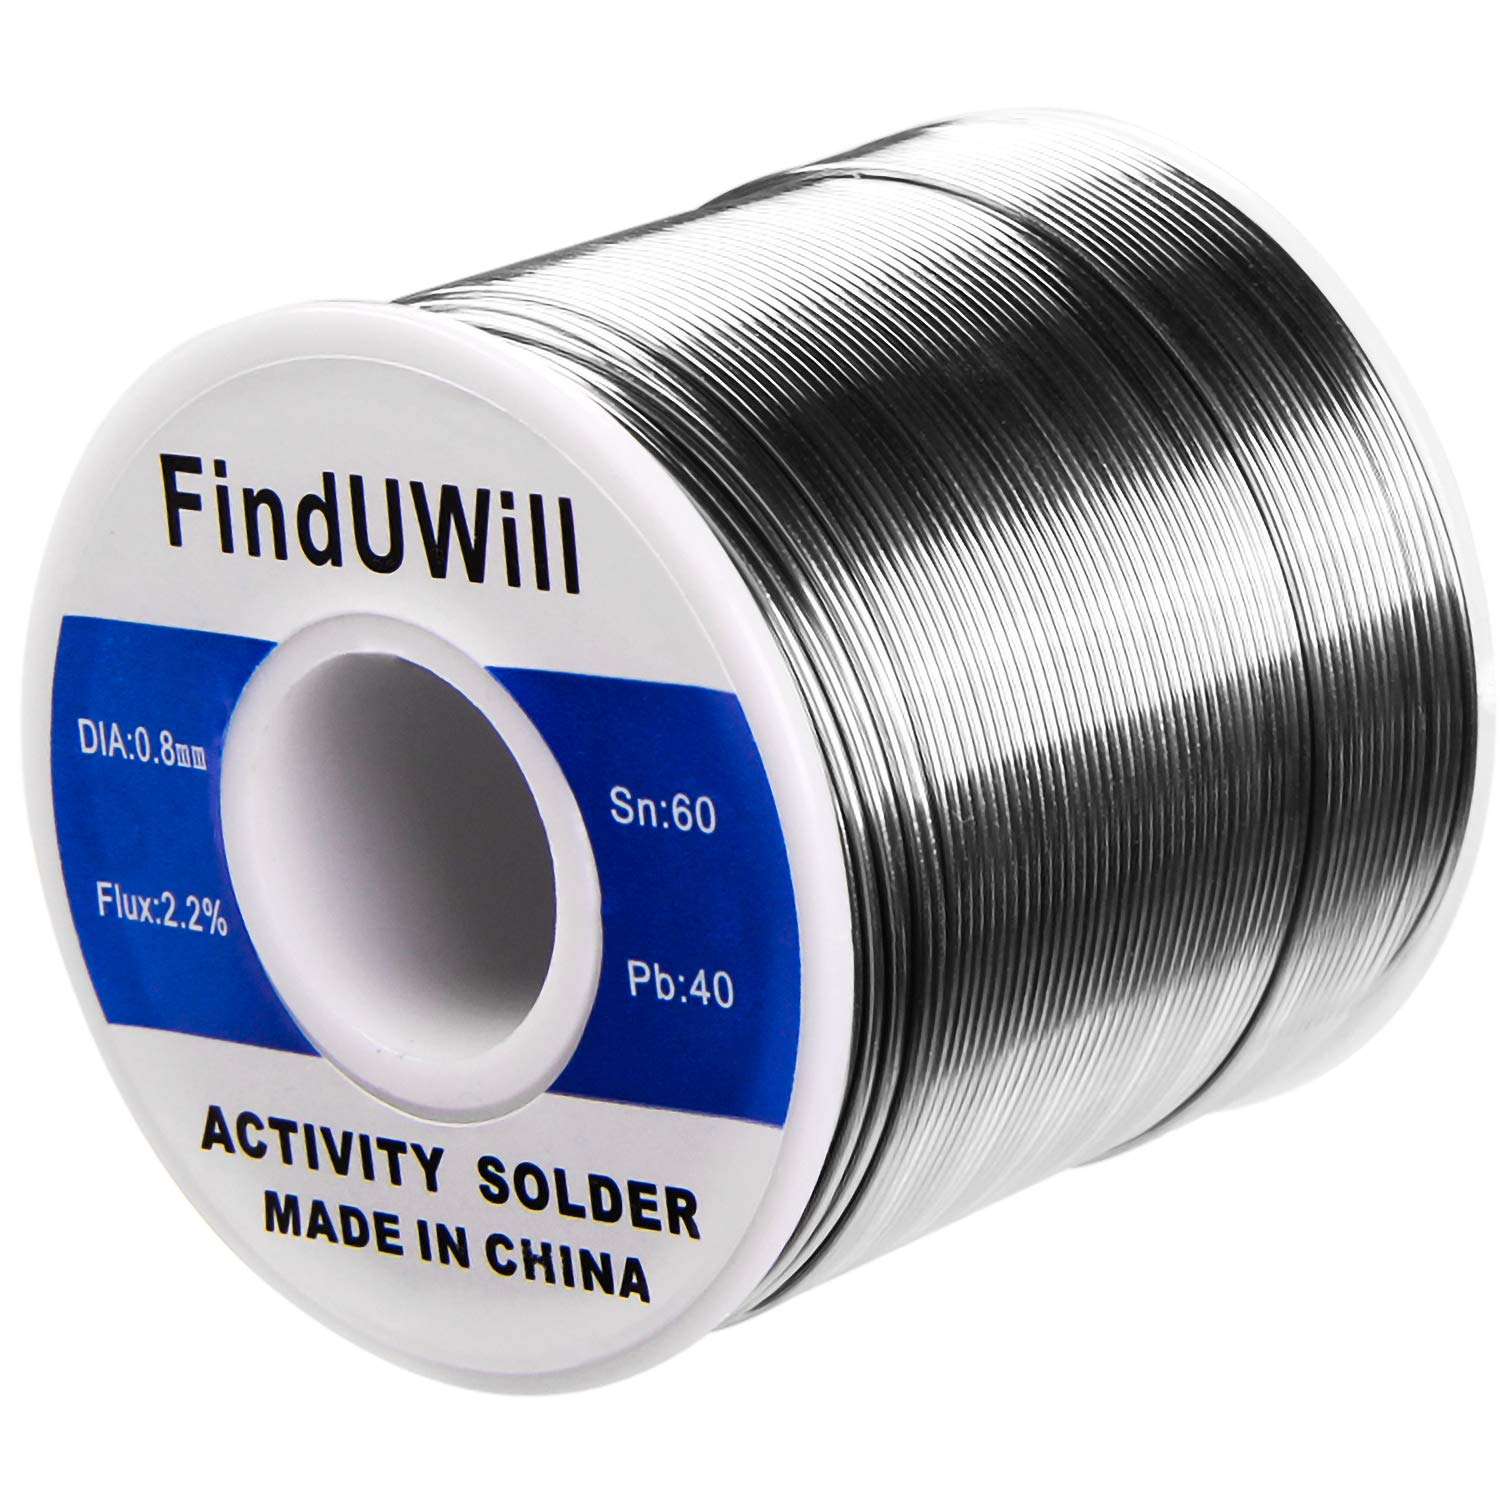 FindUWill Solder Roll, 60/40 Alloy, 0.031'' Diameter,44'', 1.5'', 1 lb, Tin Lead Solder Wire with Rosin for Electrical Soldering (0.031inch/0.8mm-1lb)